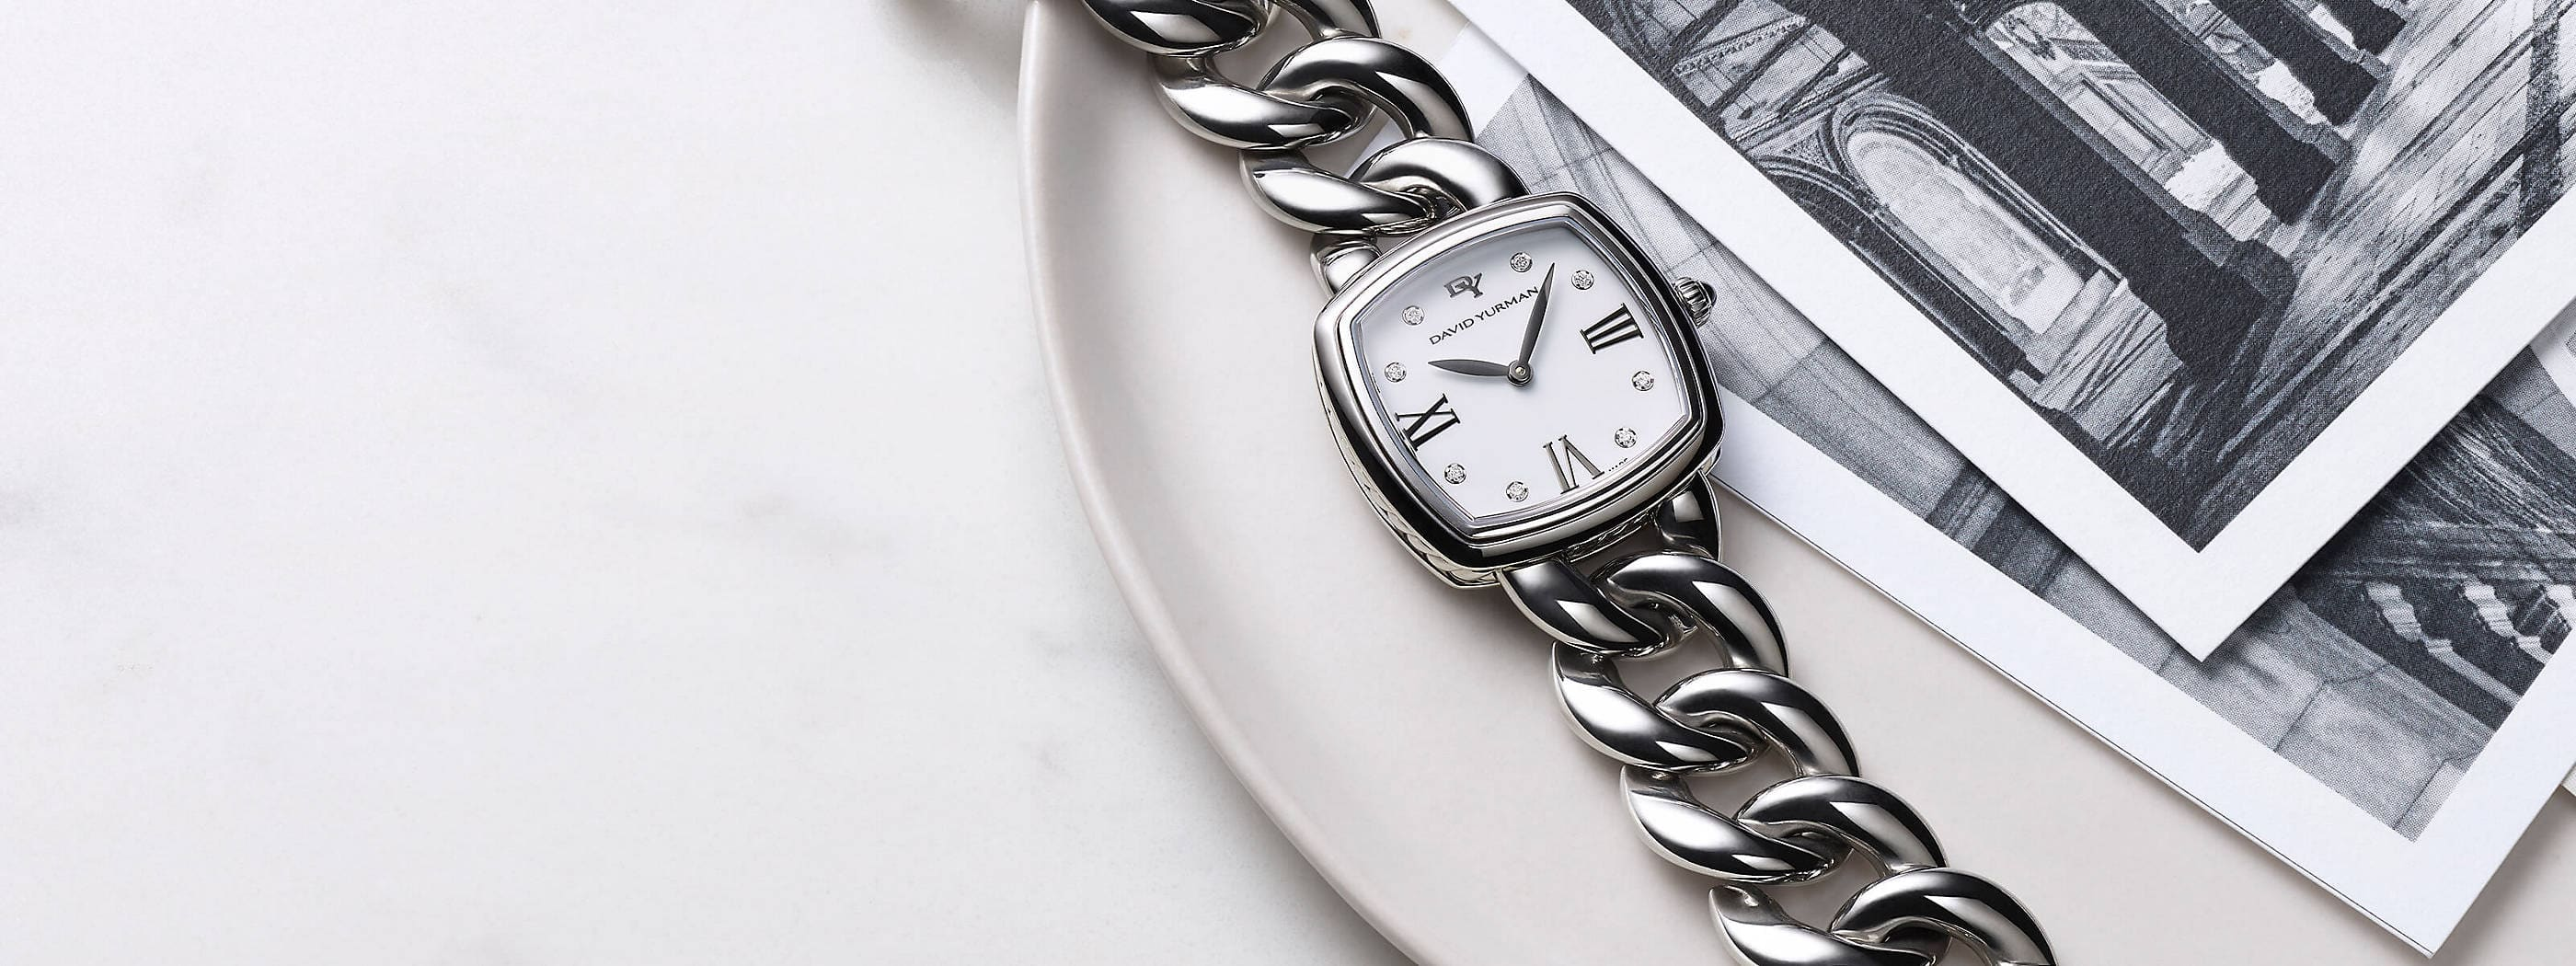 A color photograph shows a marble surface and a David Yurman women's Albion bracelet watch on a beige dish next to black-and-white architectural photographs. The watch is crafted from stainless steel with pavé diamonds.